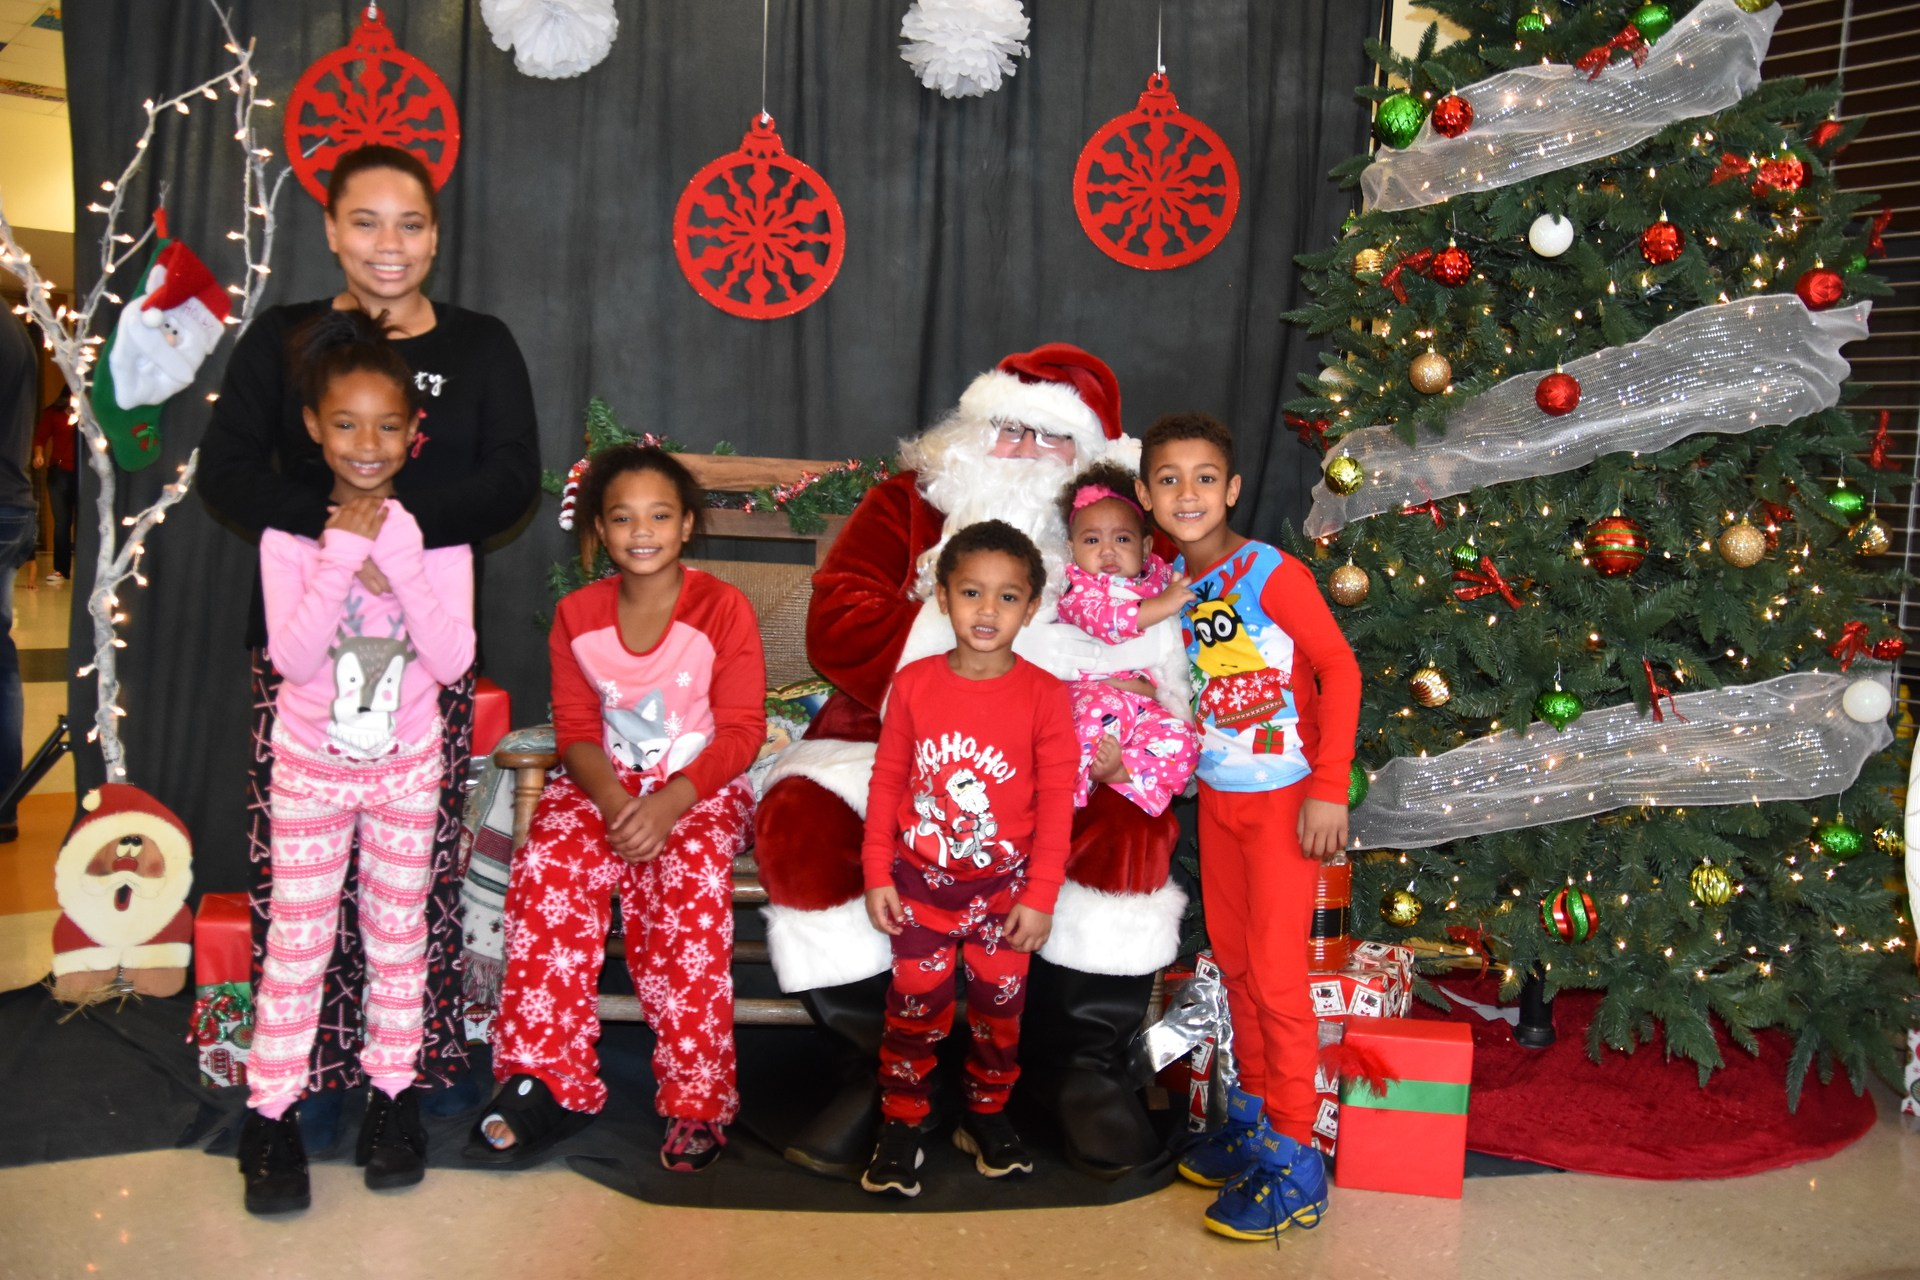 Kids get their pictures taken with Santa during Pancakes with Santa.